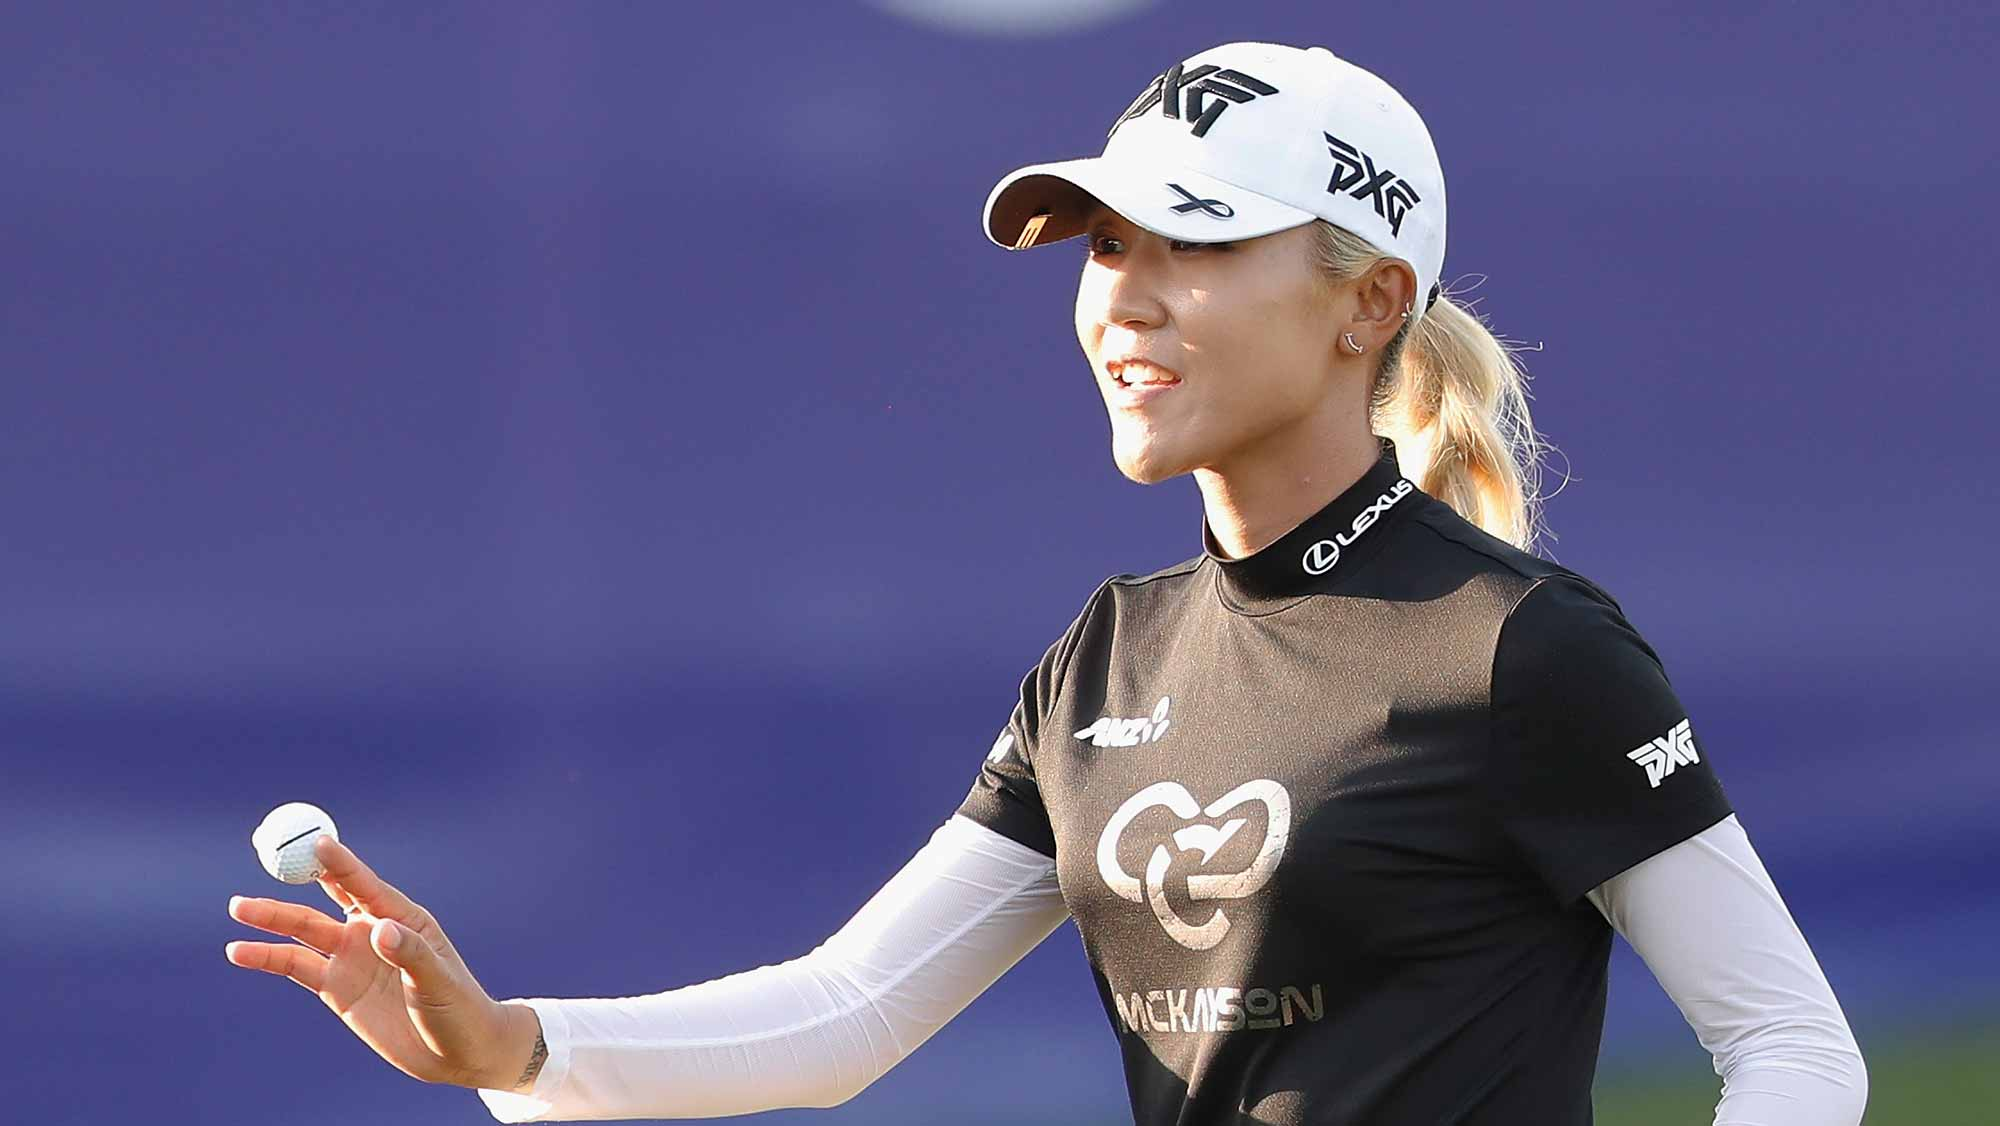 Lydia Ko of New Zealand acknowledges to the spectators at the eighteen hole during the third round of the Swinging Skirts LPGA Taiwan Championship at Ta Shee Golf & Country Club on October 27, 2018 in Taoyuan, Chinese Taipei